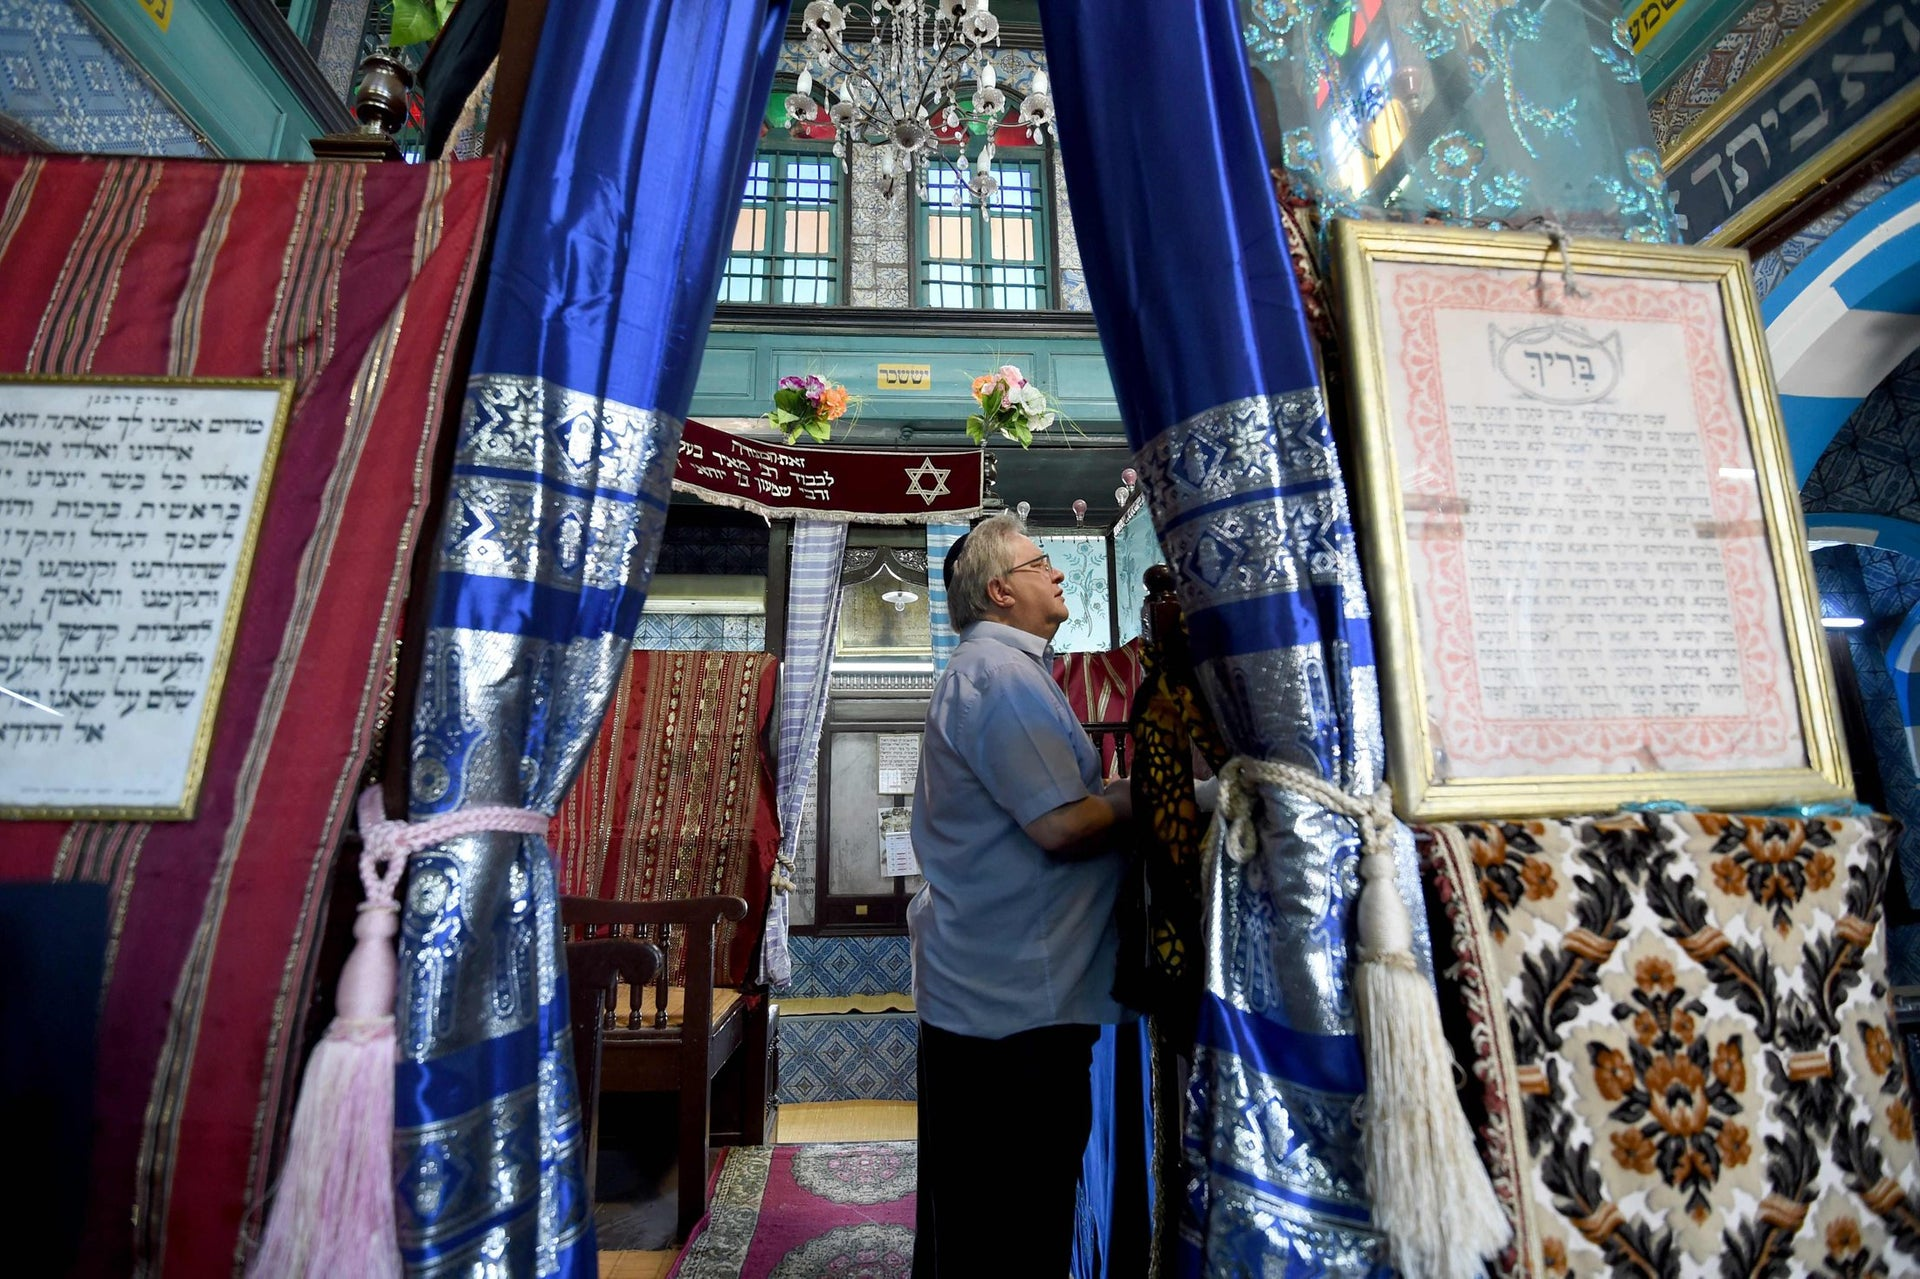 Chief executive of Liberal Judaism in the United Kingdon Rabbi Danny Rich prays at the Ghriba synagogue in the Tunisian resort island of Djerba during the annual Jewish pilgrimage on May 25, 2016.